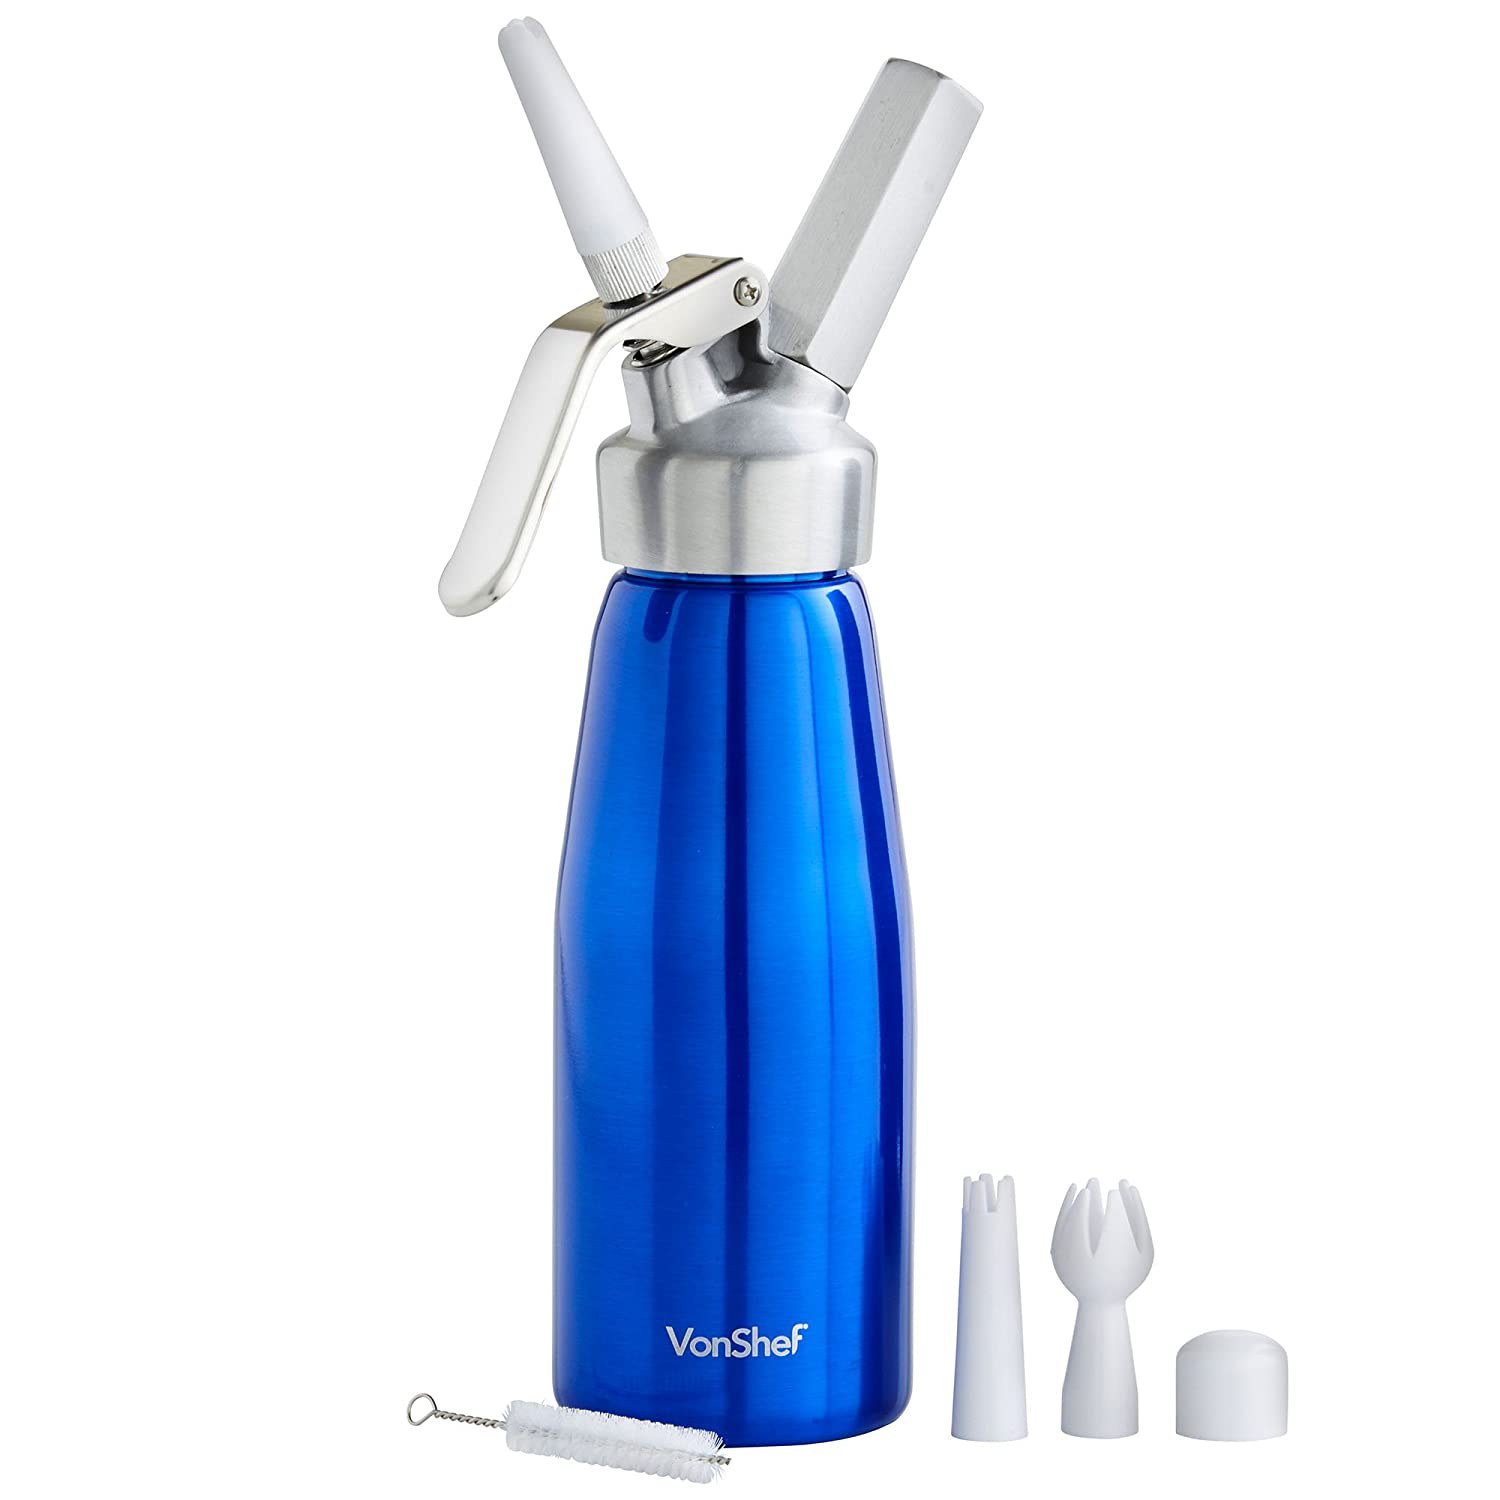 Vonshef 05 Litre Whipped Cream Dispenser With 3 Extra Nozzles And Bebe Dot Bayi Blister Isi Pcs Size M Cleaning Brush Blue Kitchen Home